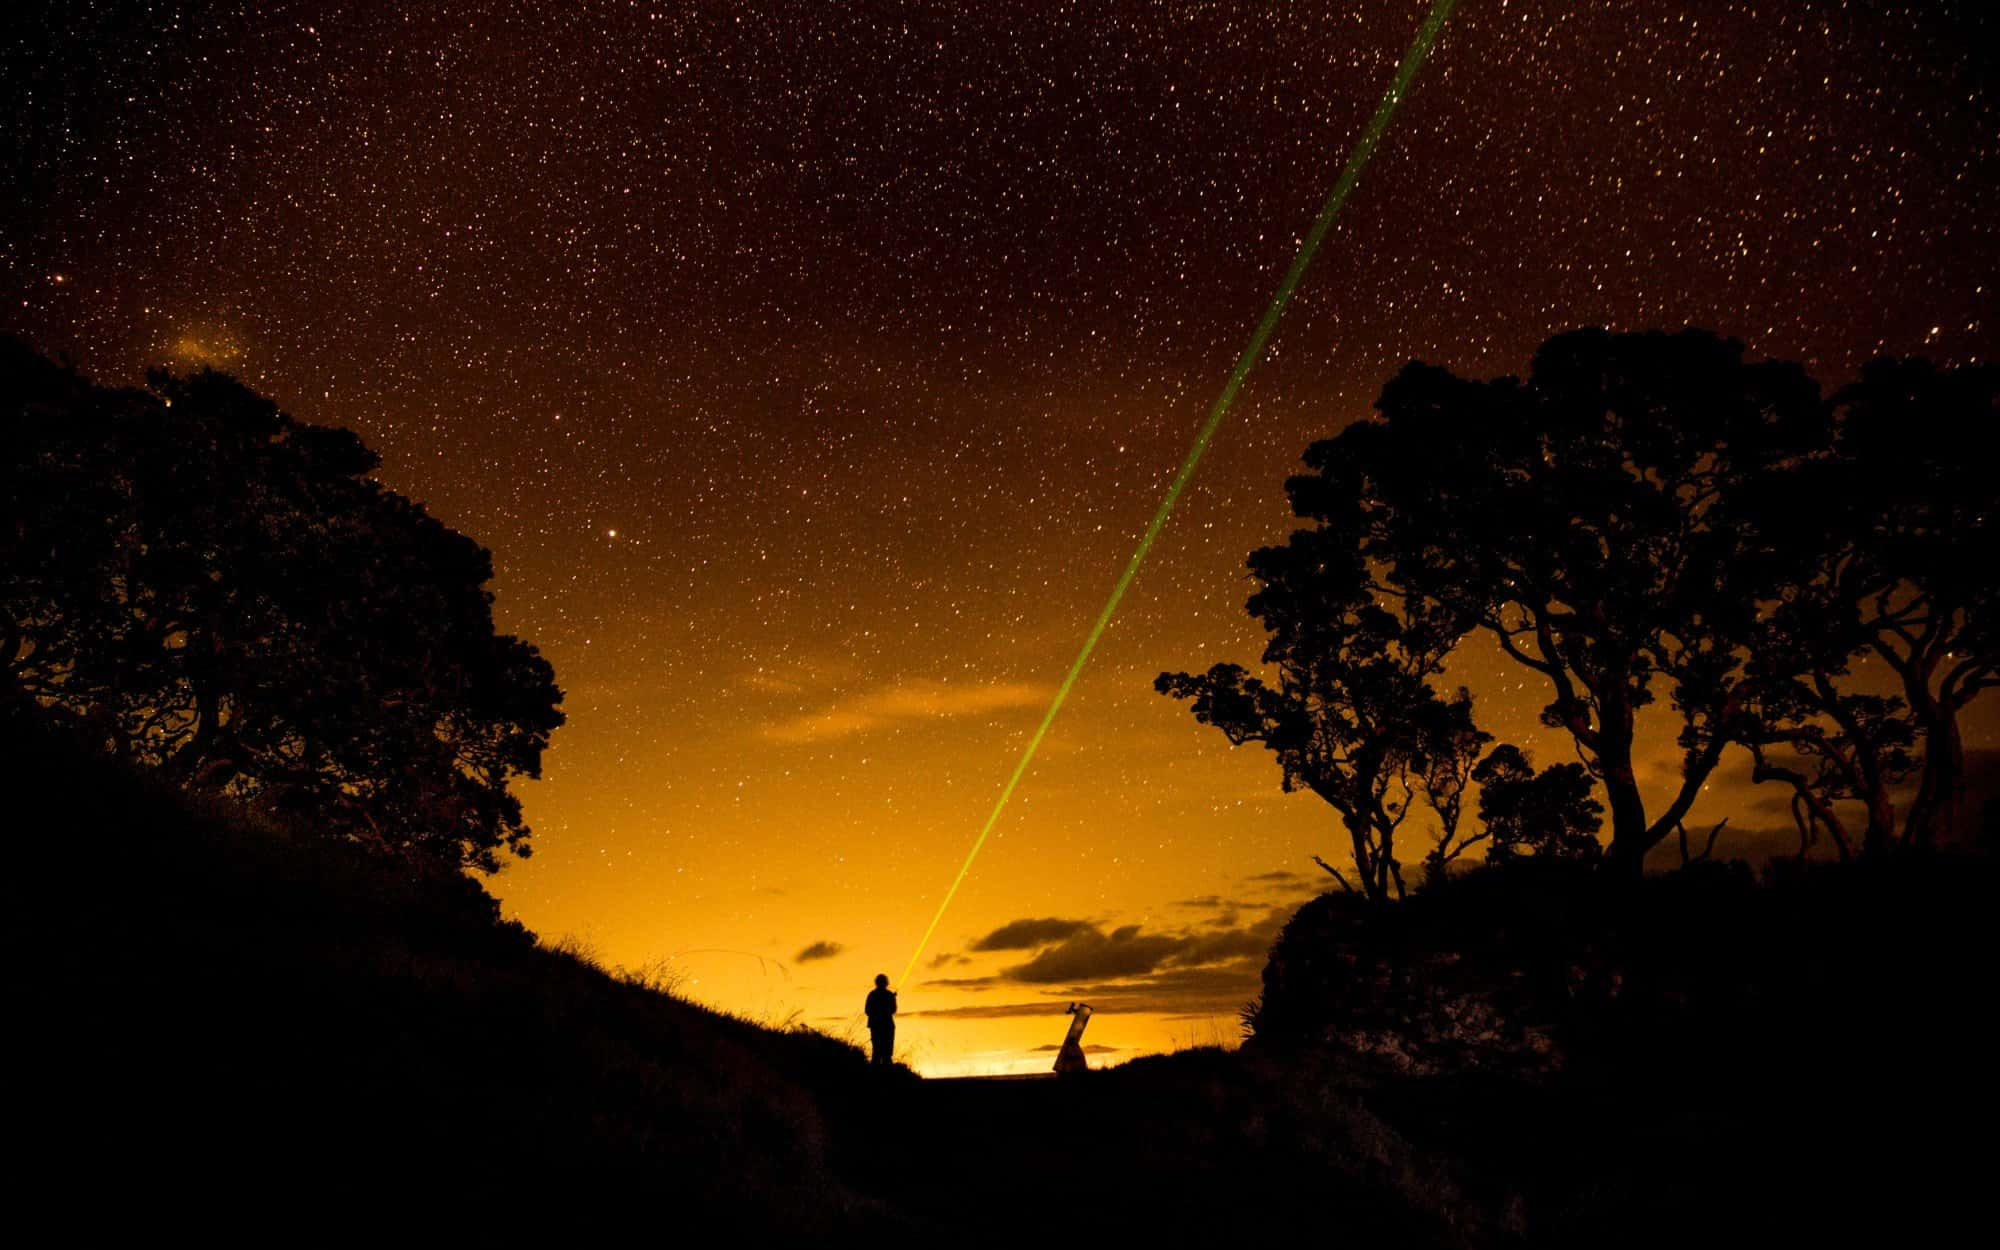 Stargazing in New Zealand - Good Heavens Dark Sky Experiences on Great Barrier Island - Pah Point